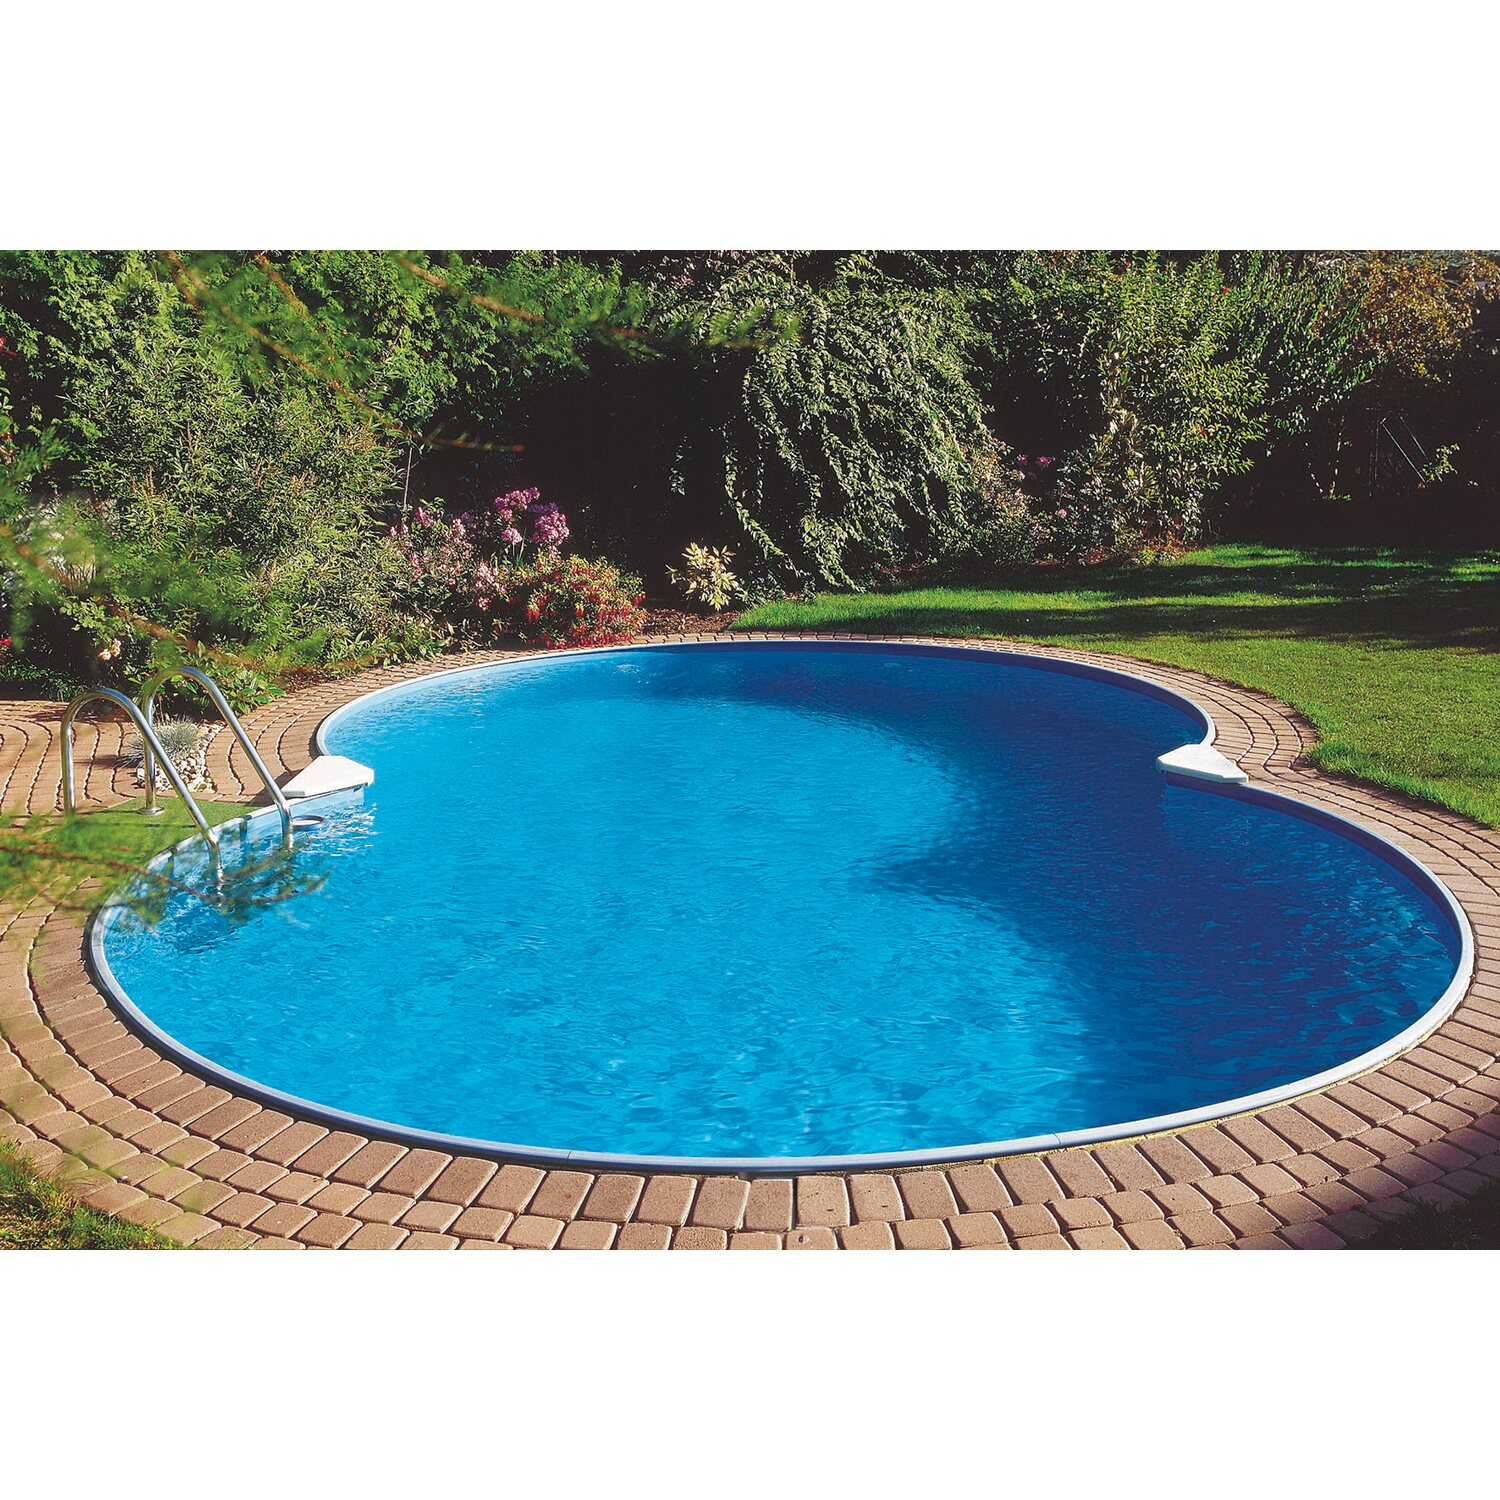 Stahlwand pool set costa rica einbaubecken achtform 725 cm for Pool design costa rica